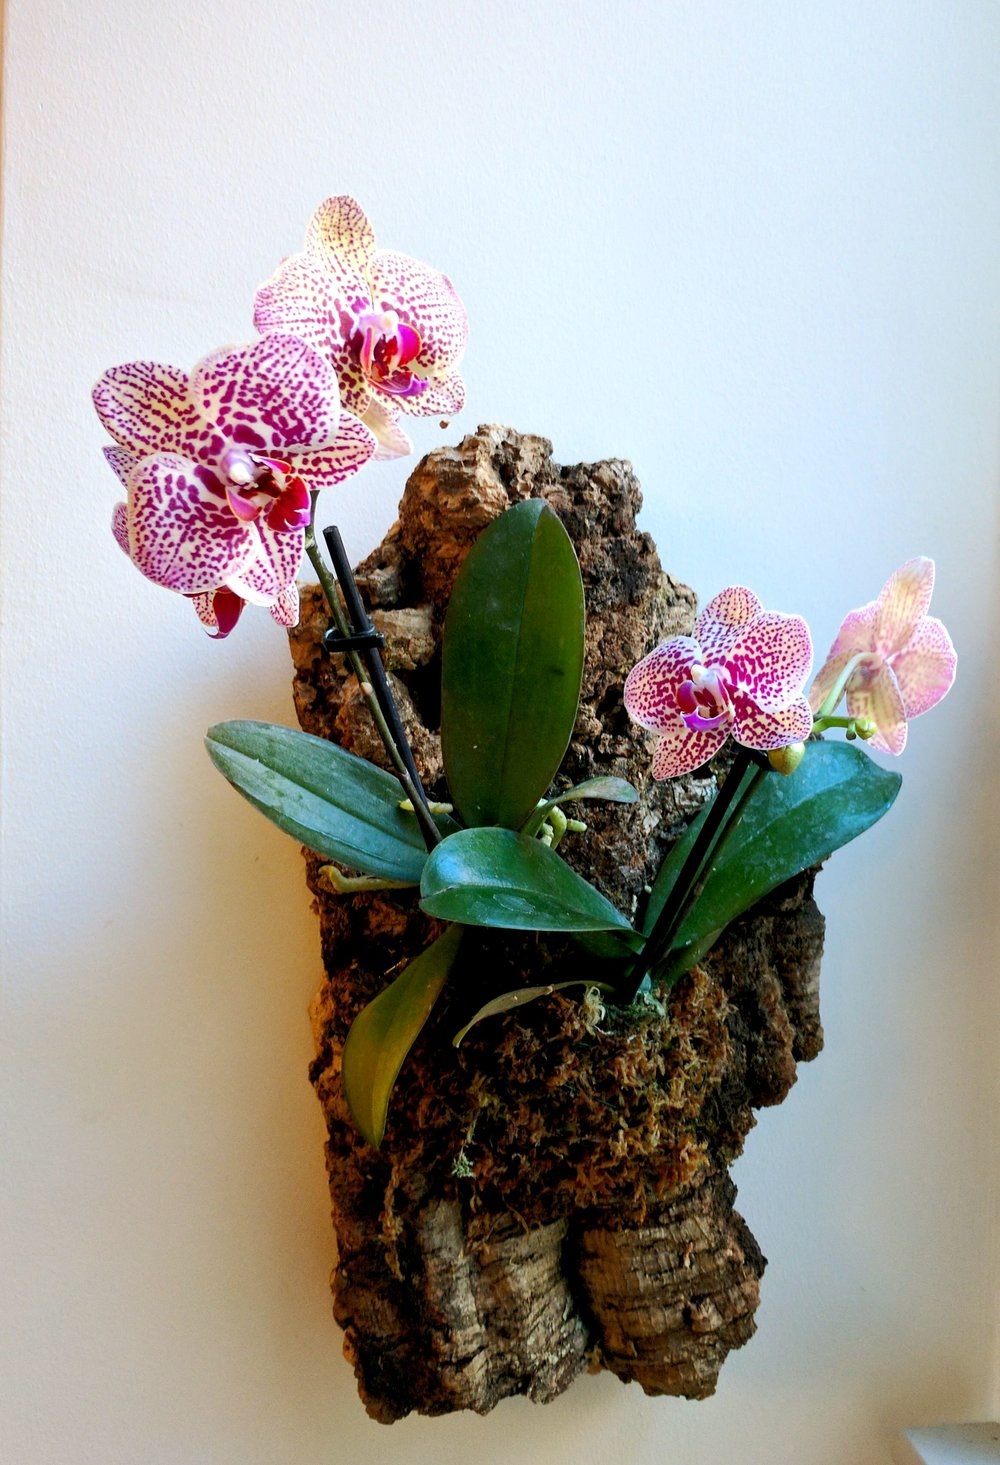 mounted-orchids.jpg